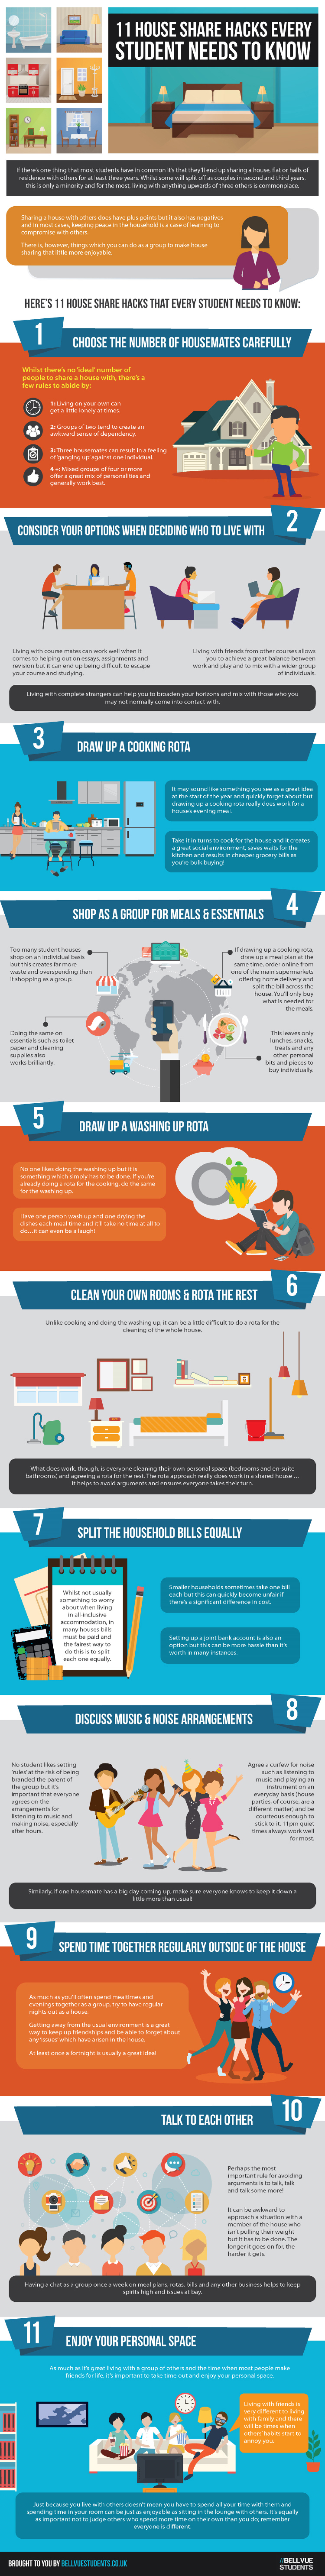 11 House Share Hacks Every Student Needs To Know Infographic